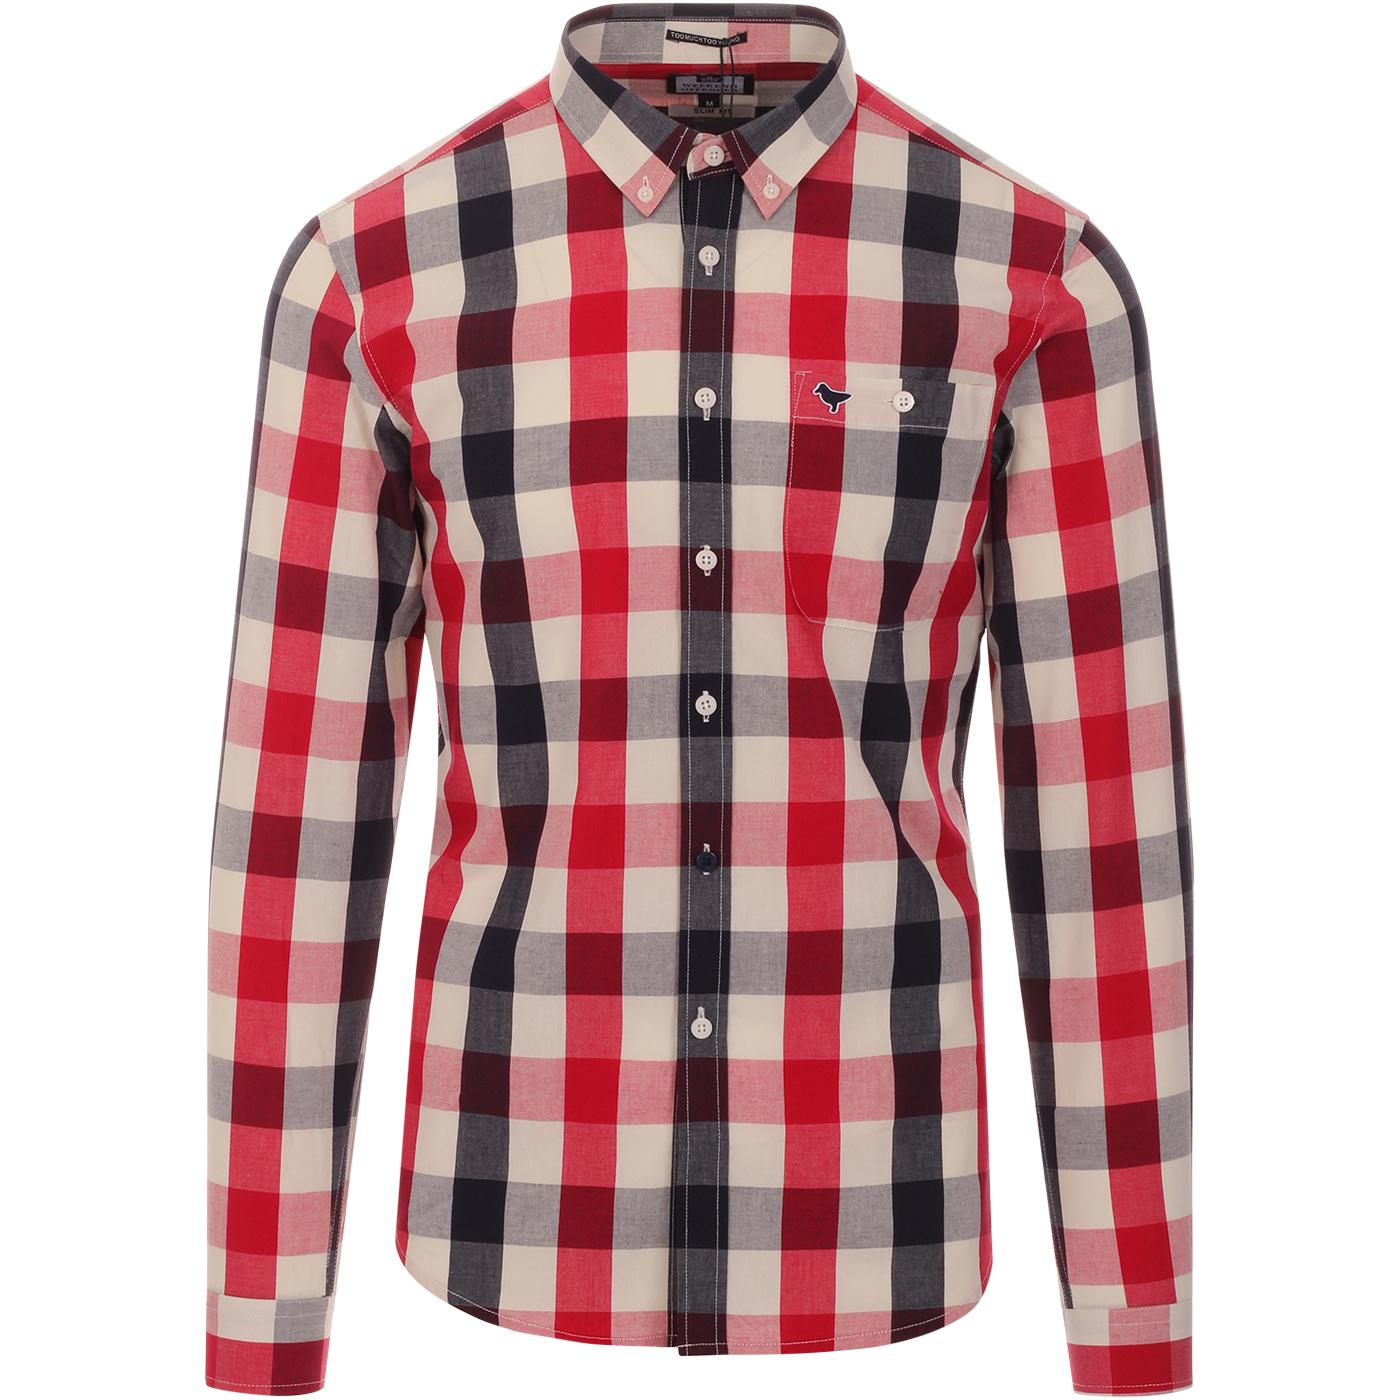 Geveria WEEKEND OFFENDER Retro Mod Check Shirt R